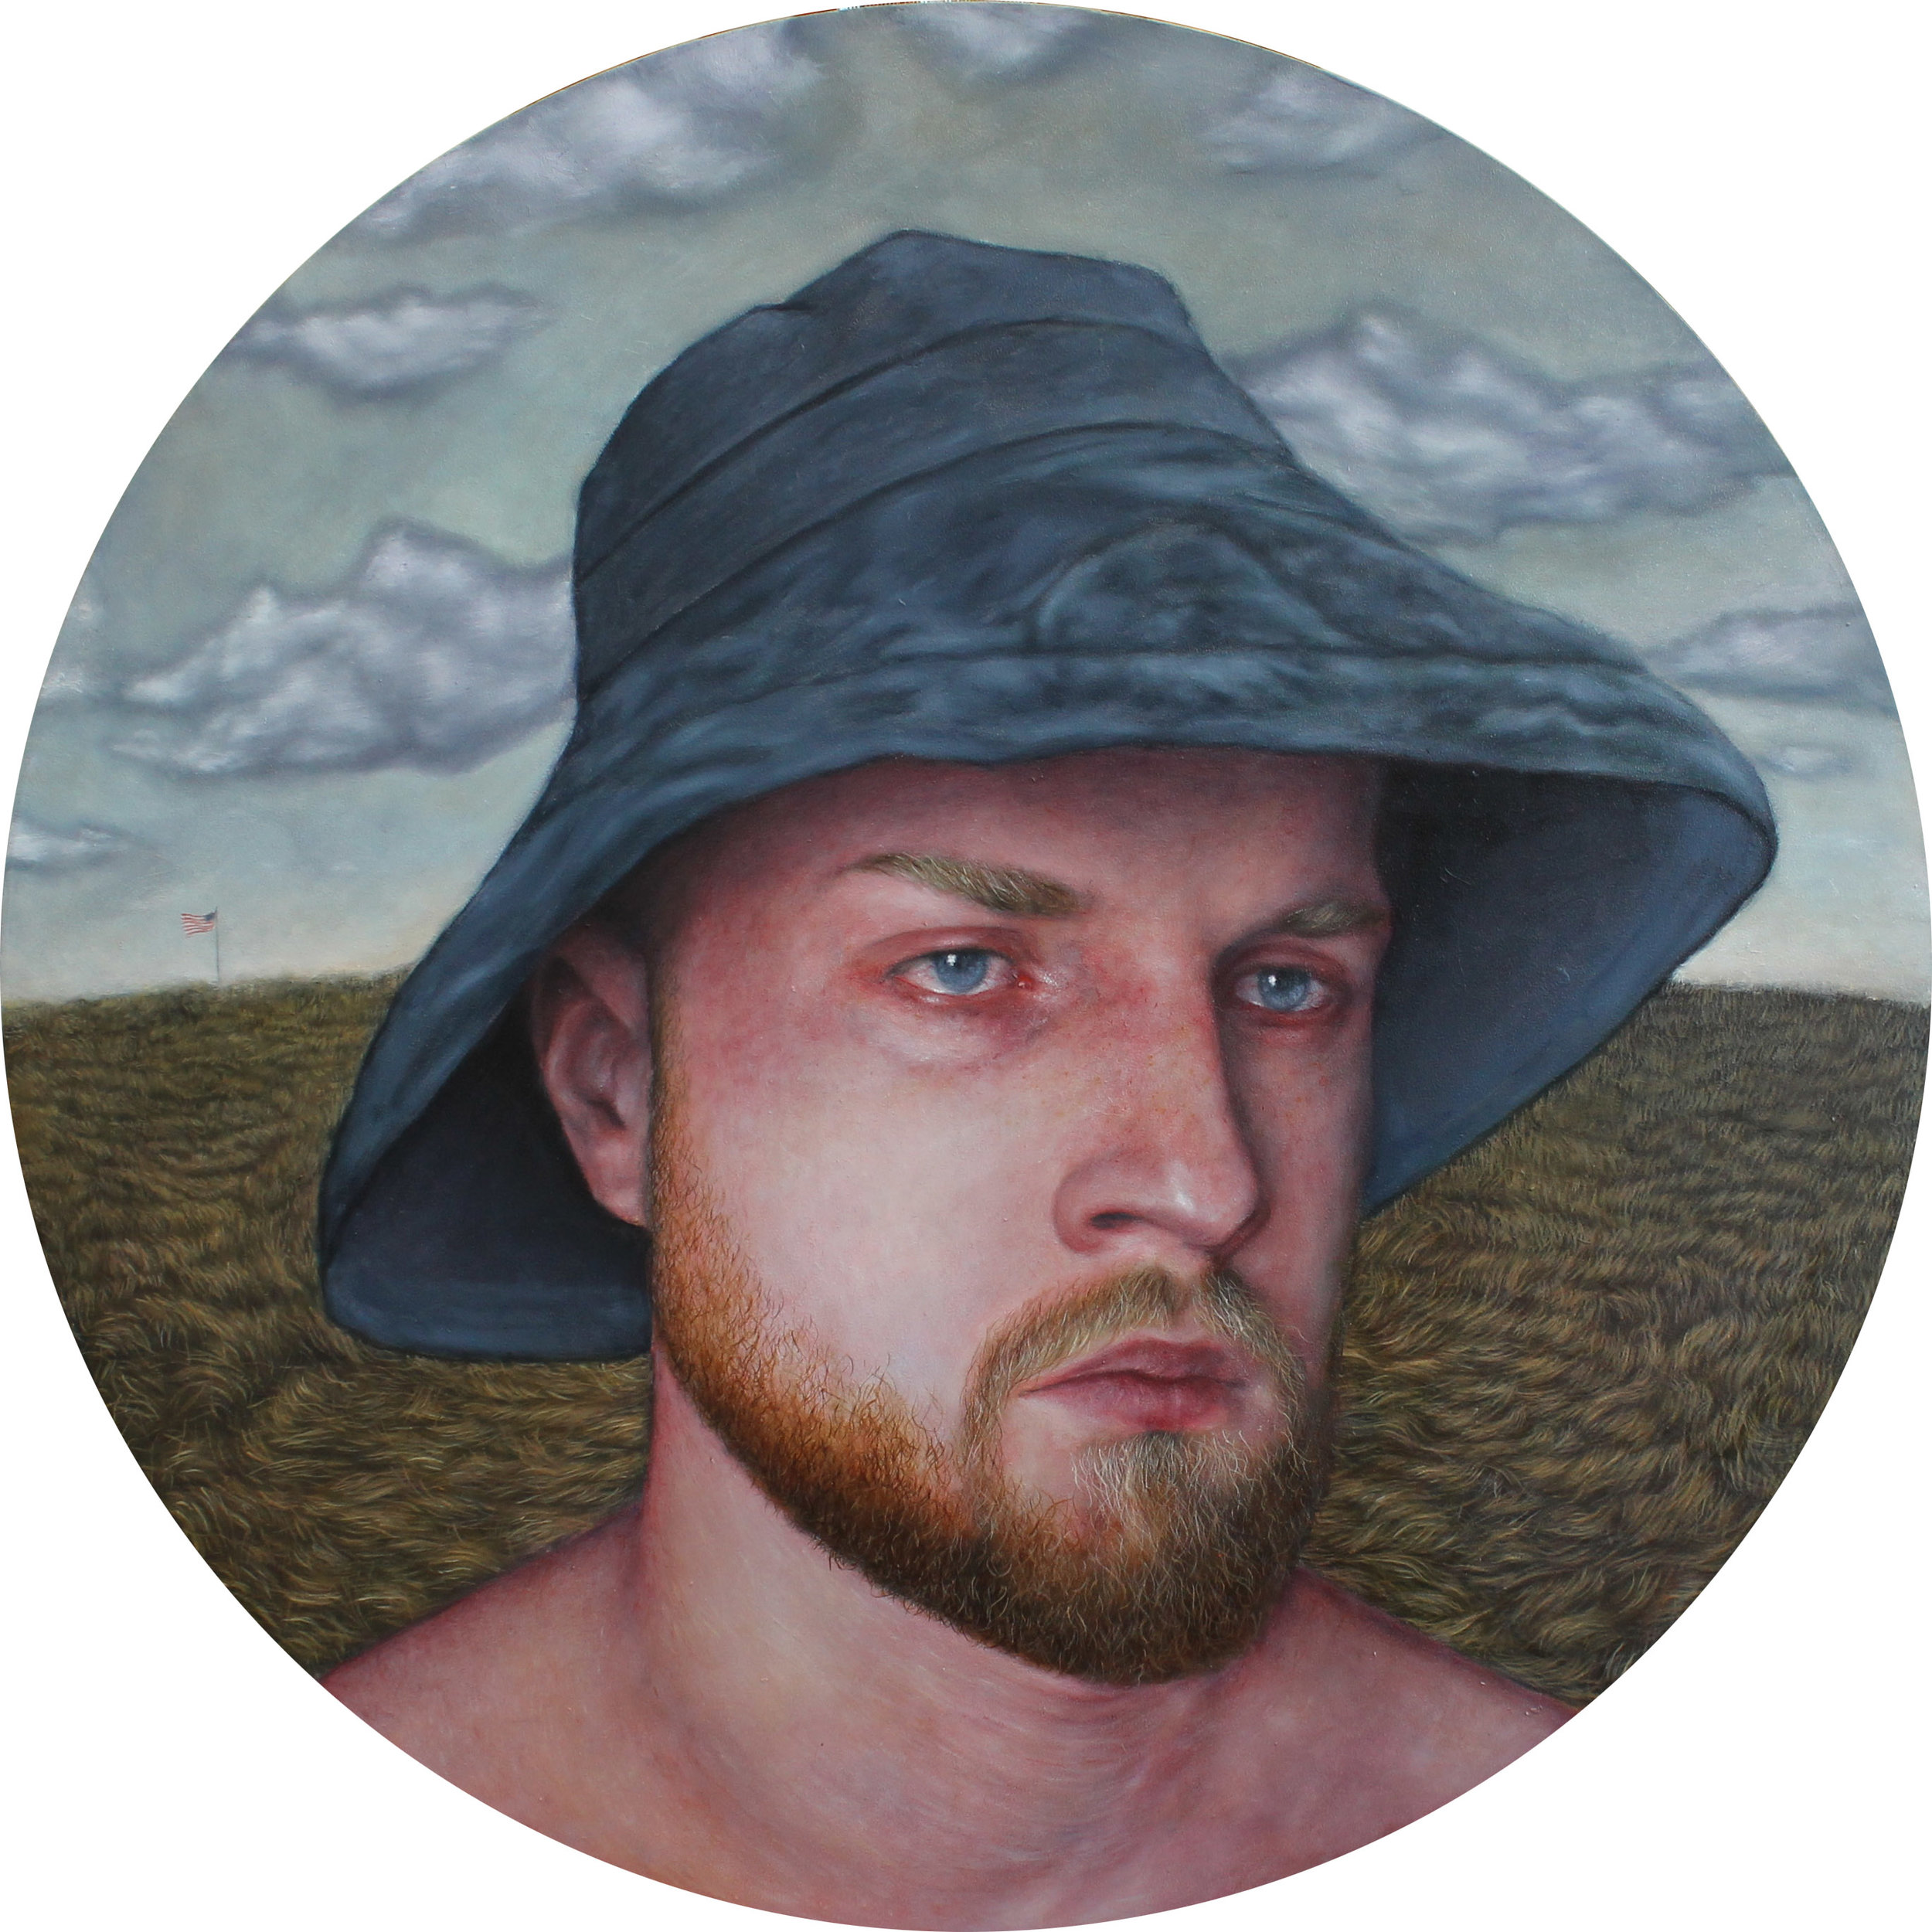 """Privately Defined World"", Oil on Wood, 28"" Diameter, 2019"